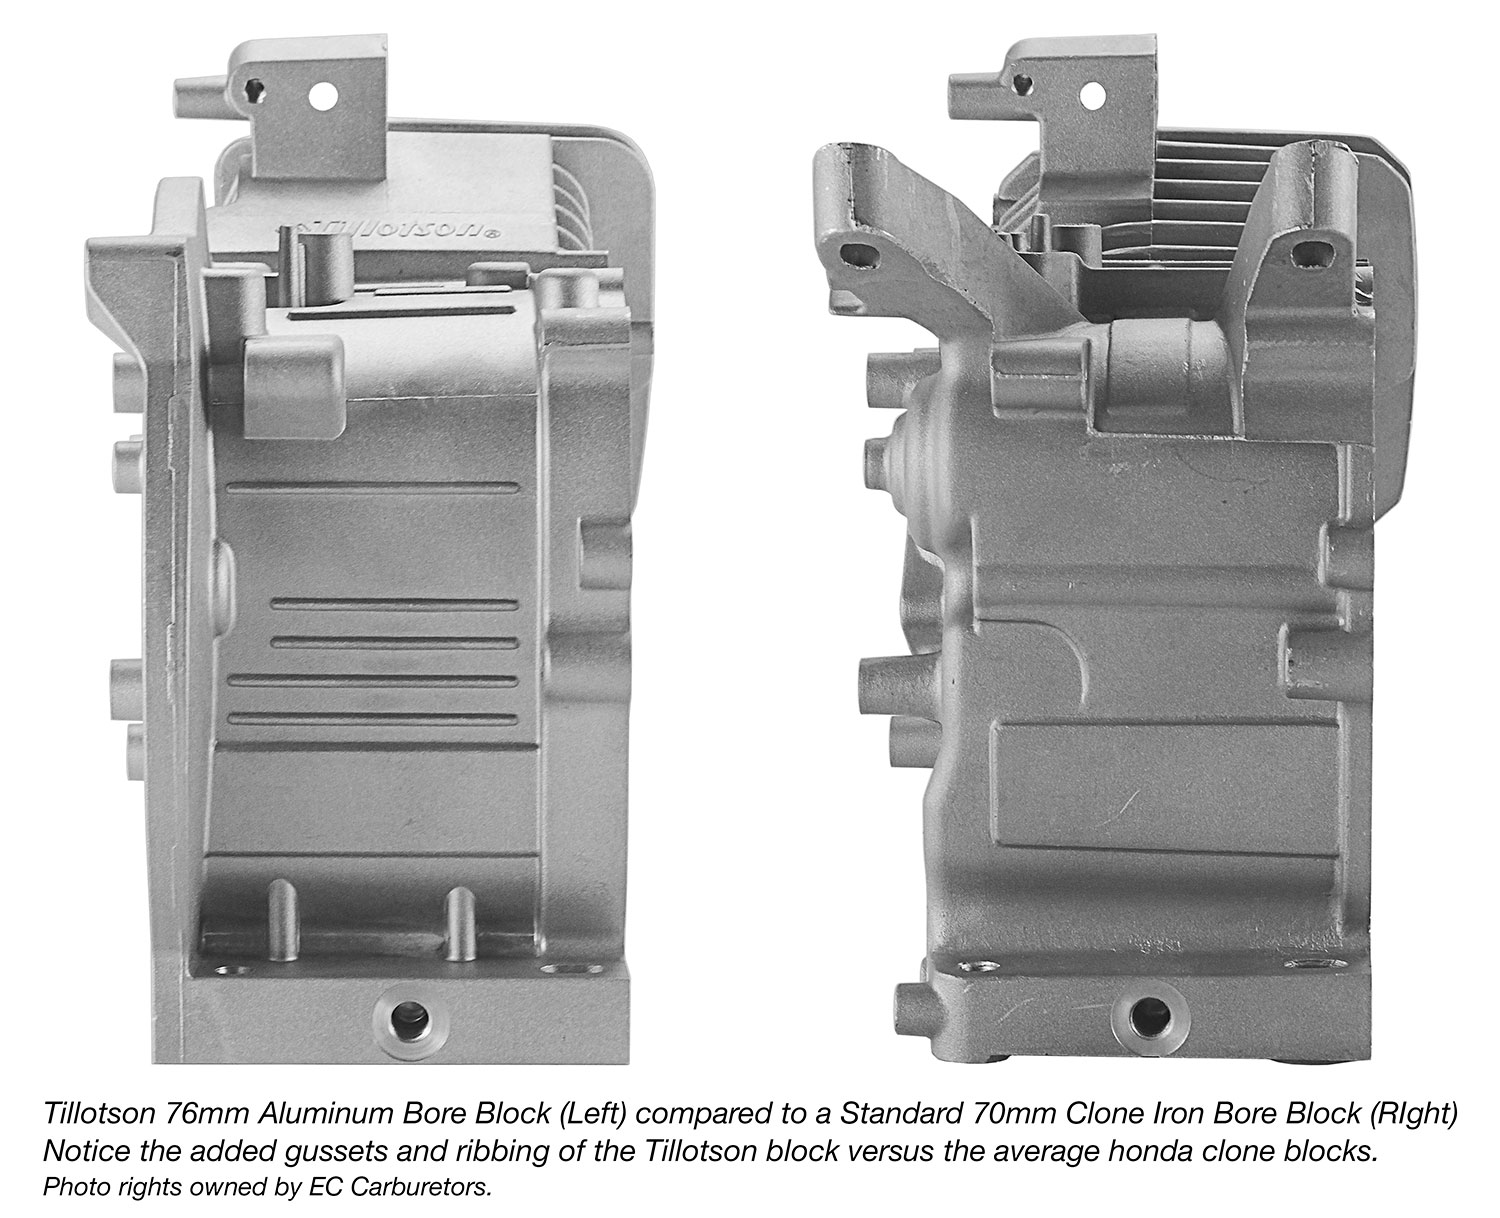 EC Tech Review: The new Tillotson Racing Blocks designed by